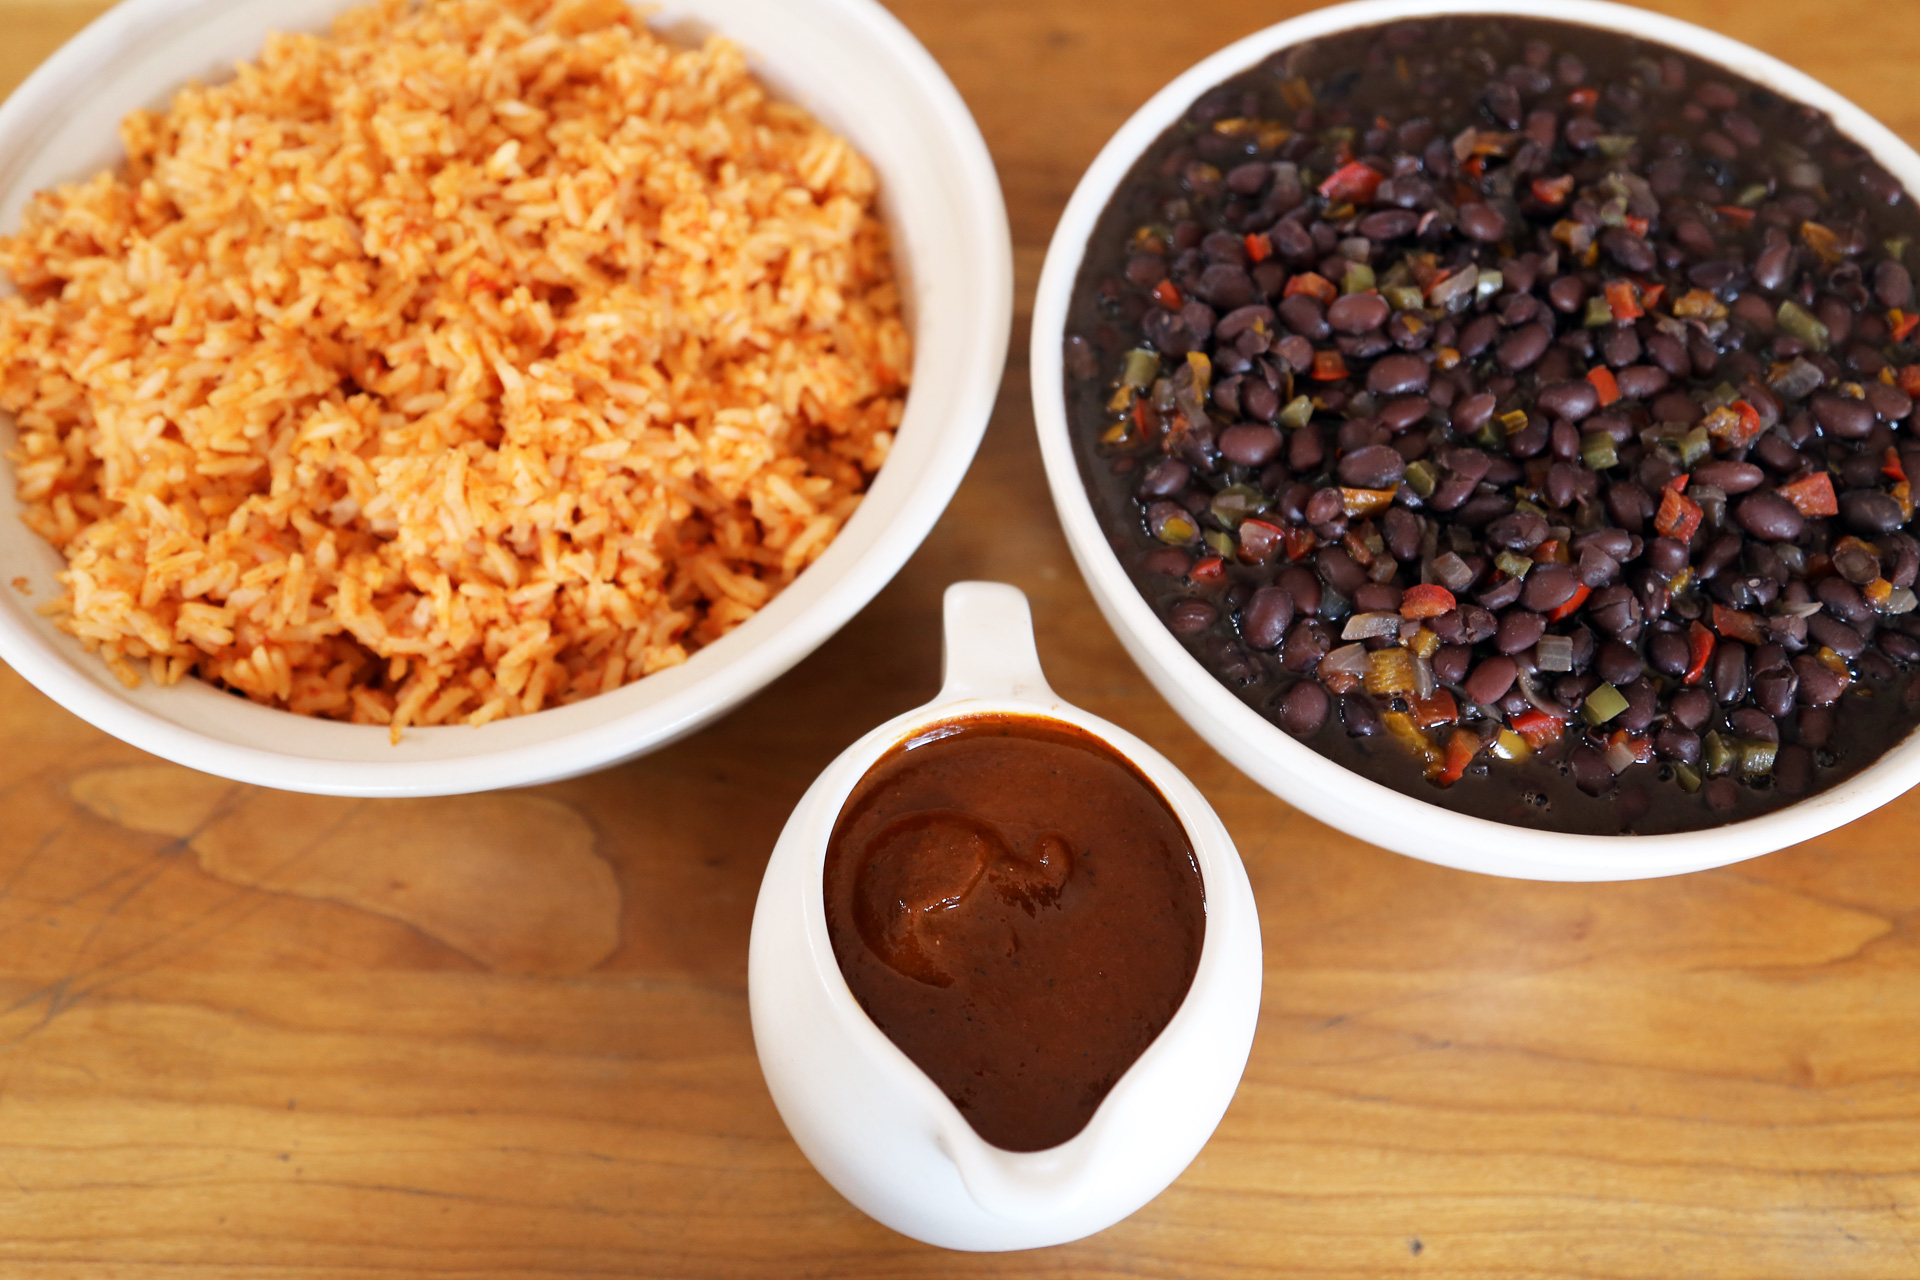 Spicy Mole Gravy with Mexican Rice and Savory Black Beans